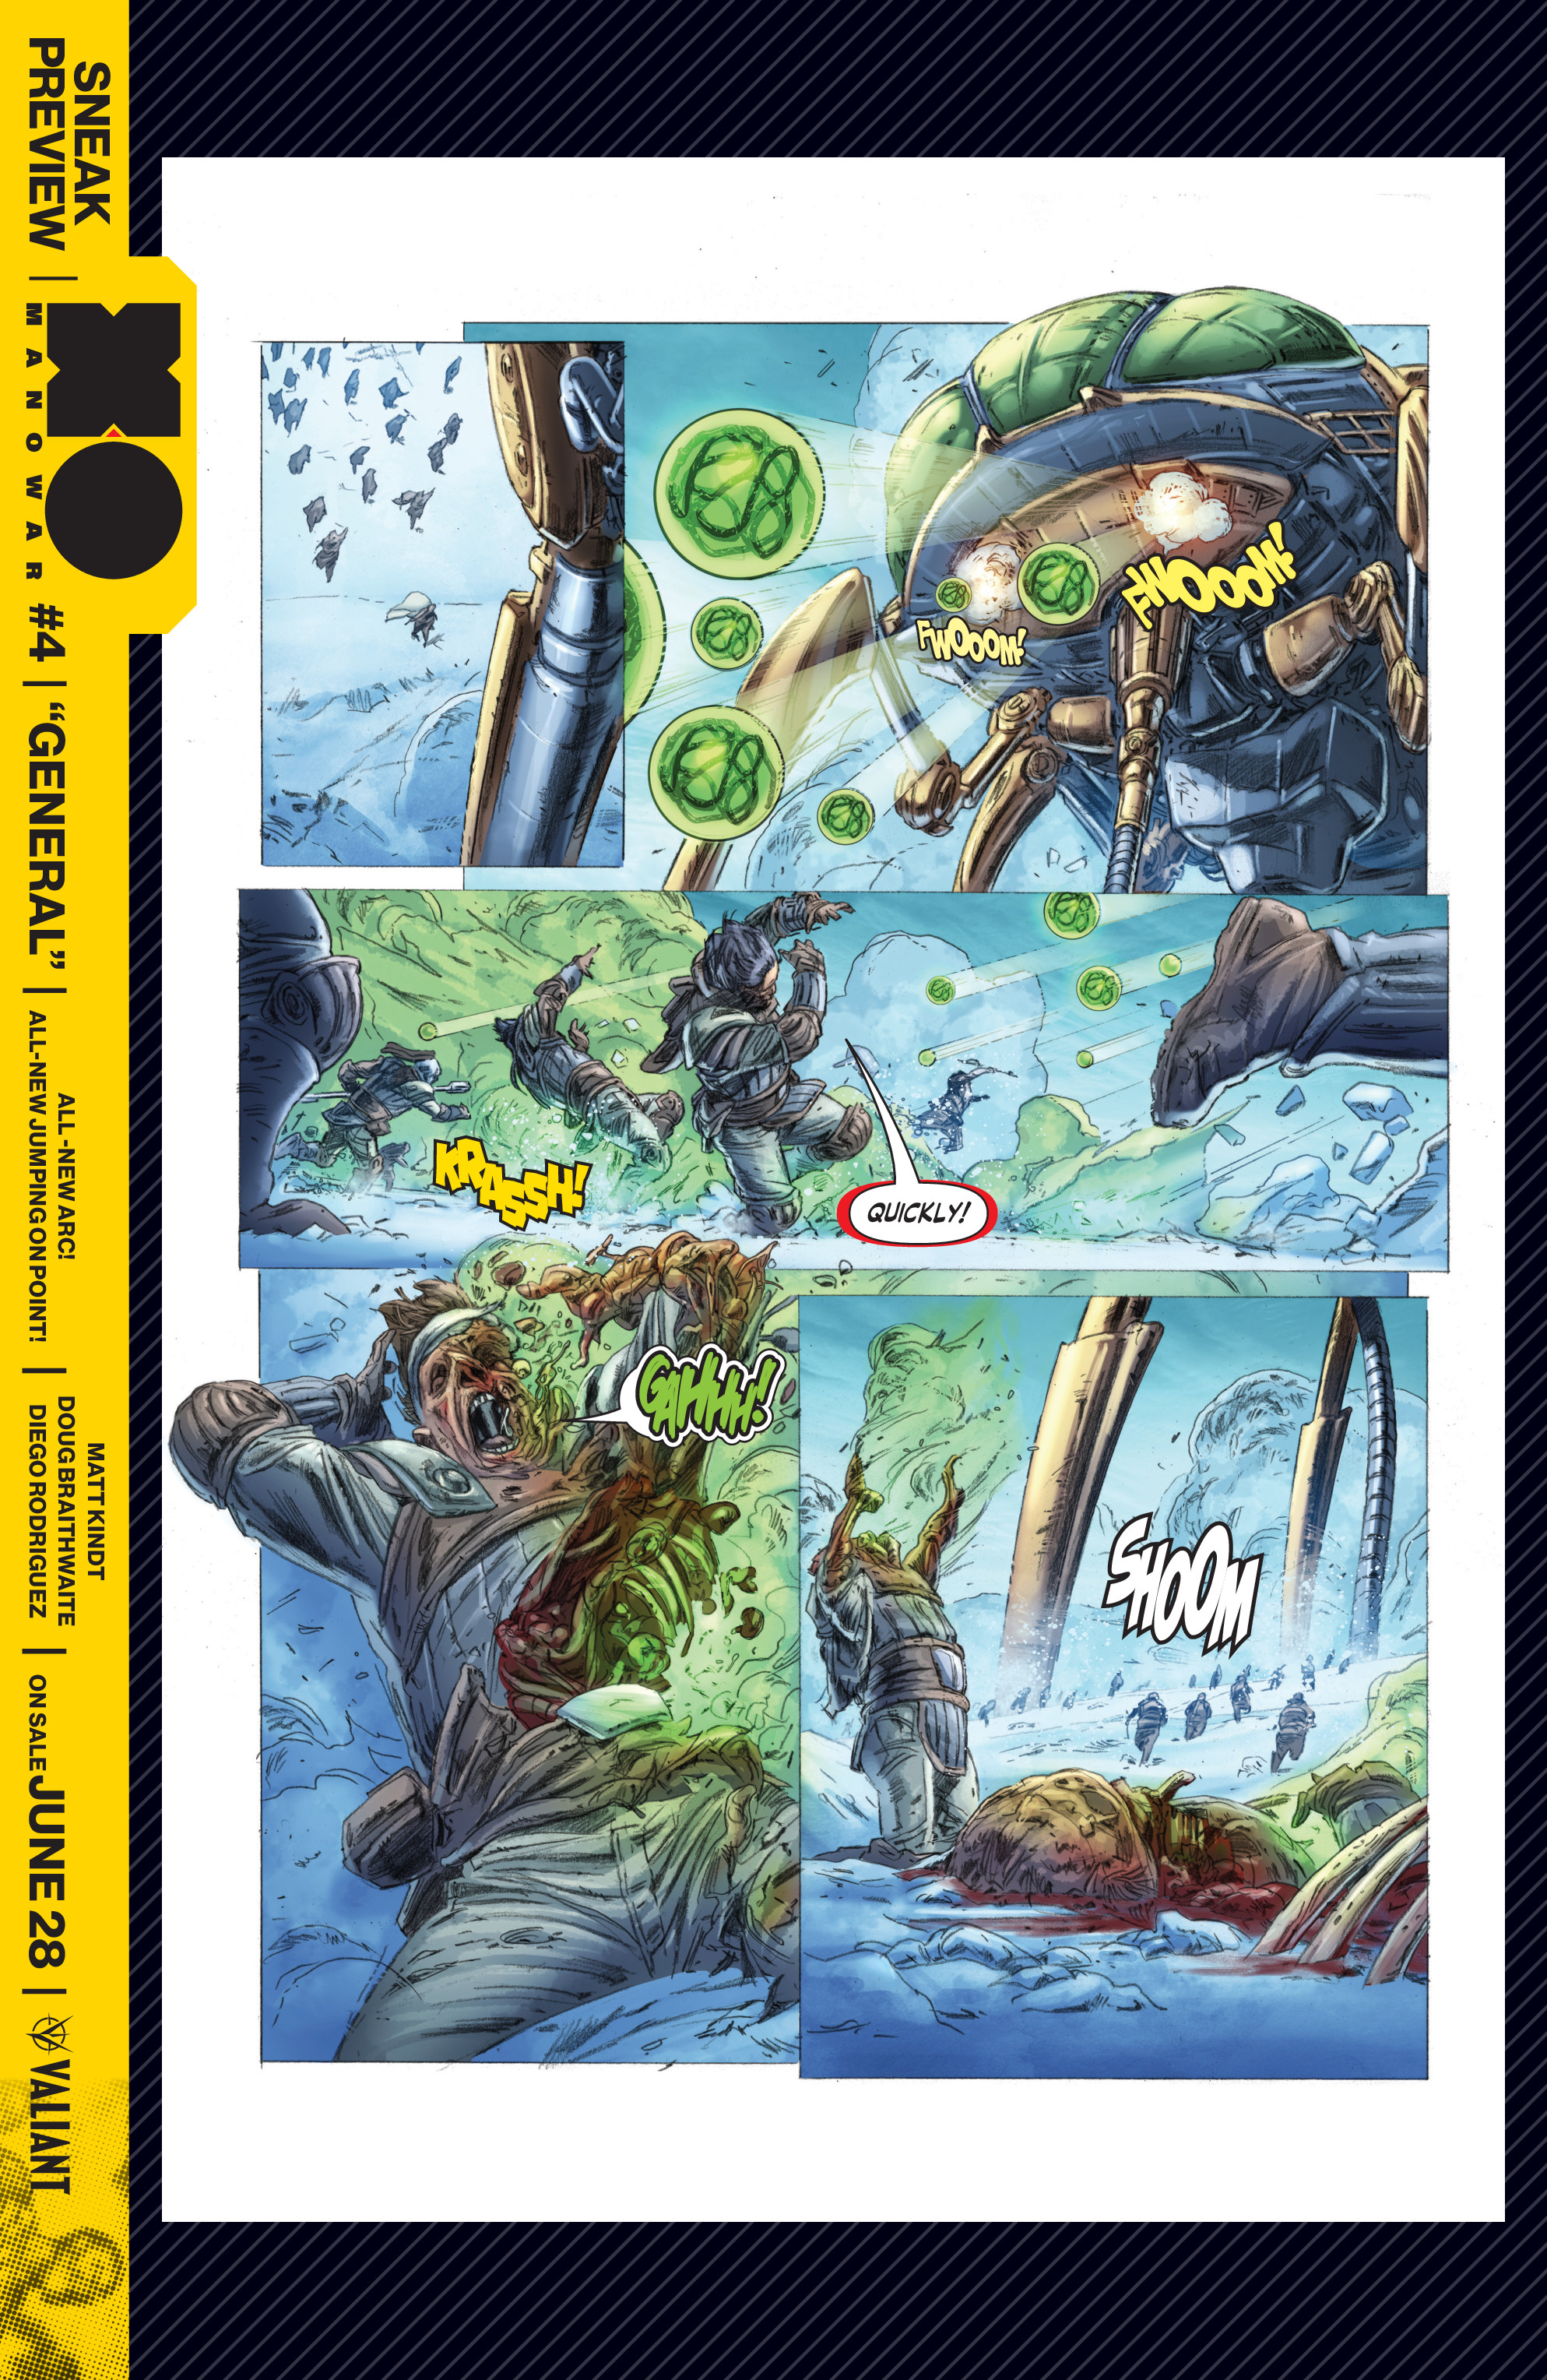 Read online Rapture comic -  Issue #2 - 29